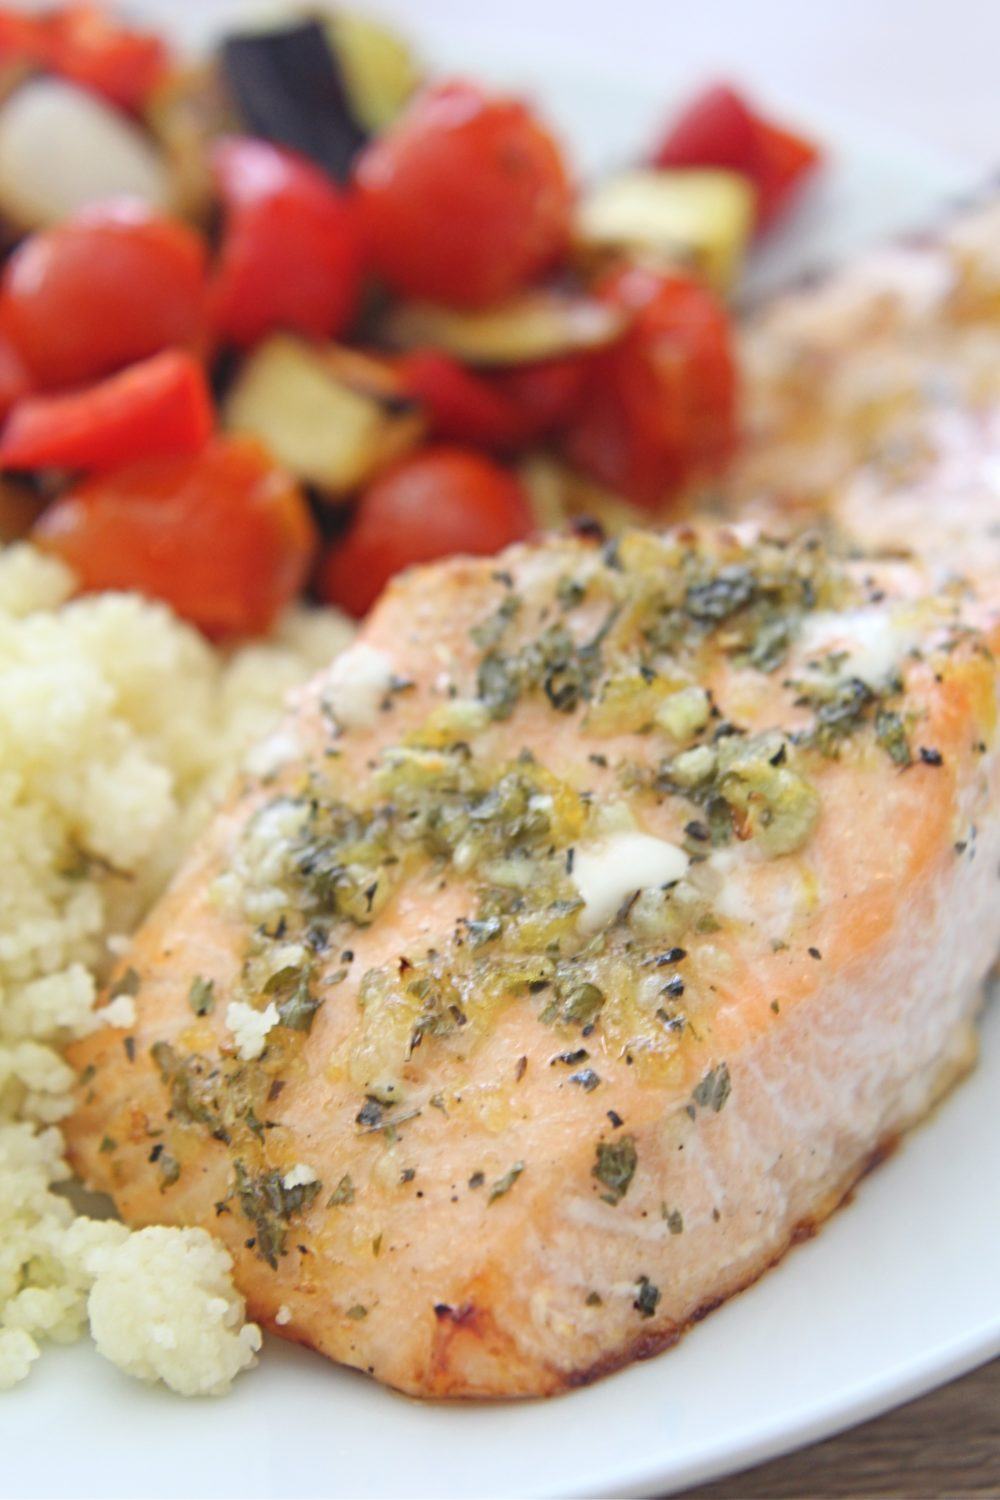 Lemon herb salmon with roasted vegetables and couscous on a white serving plate